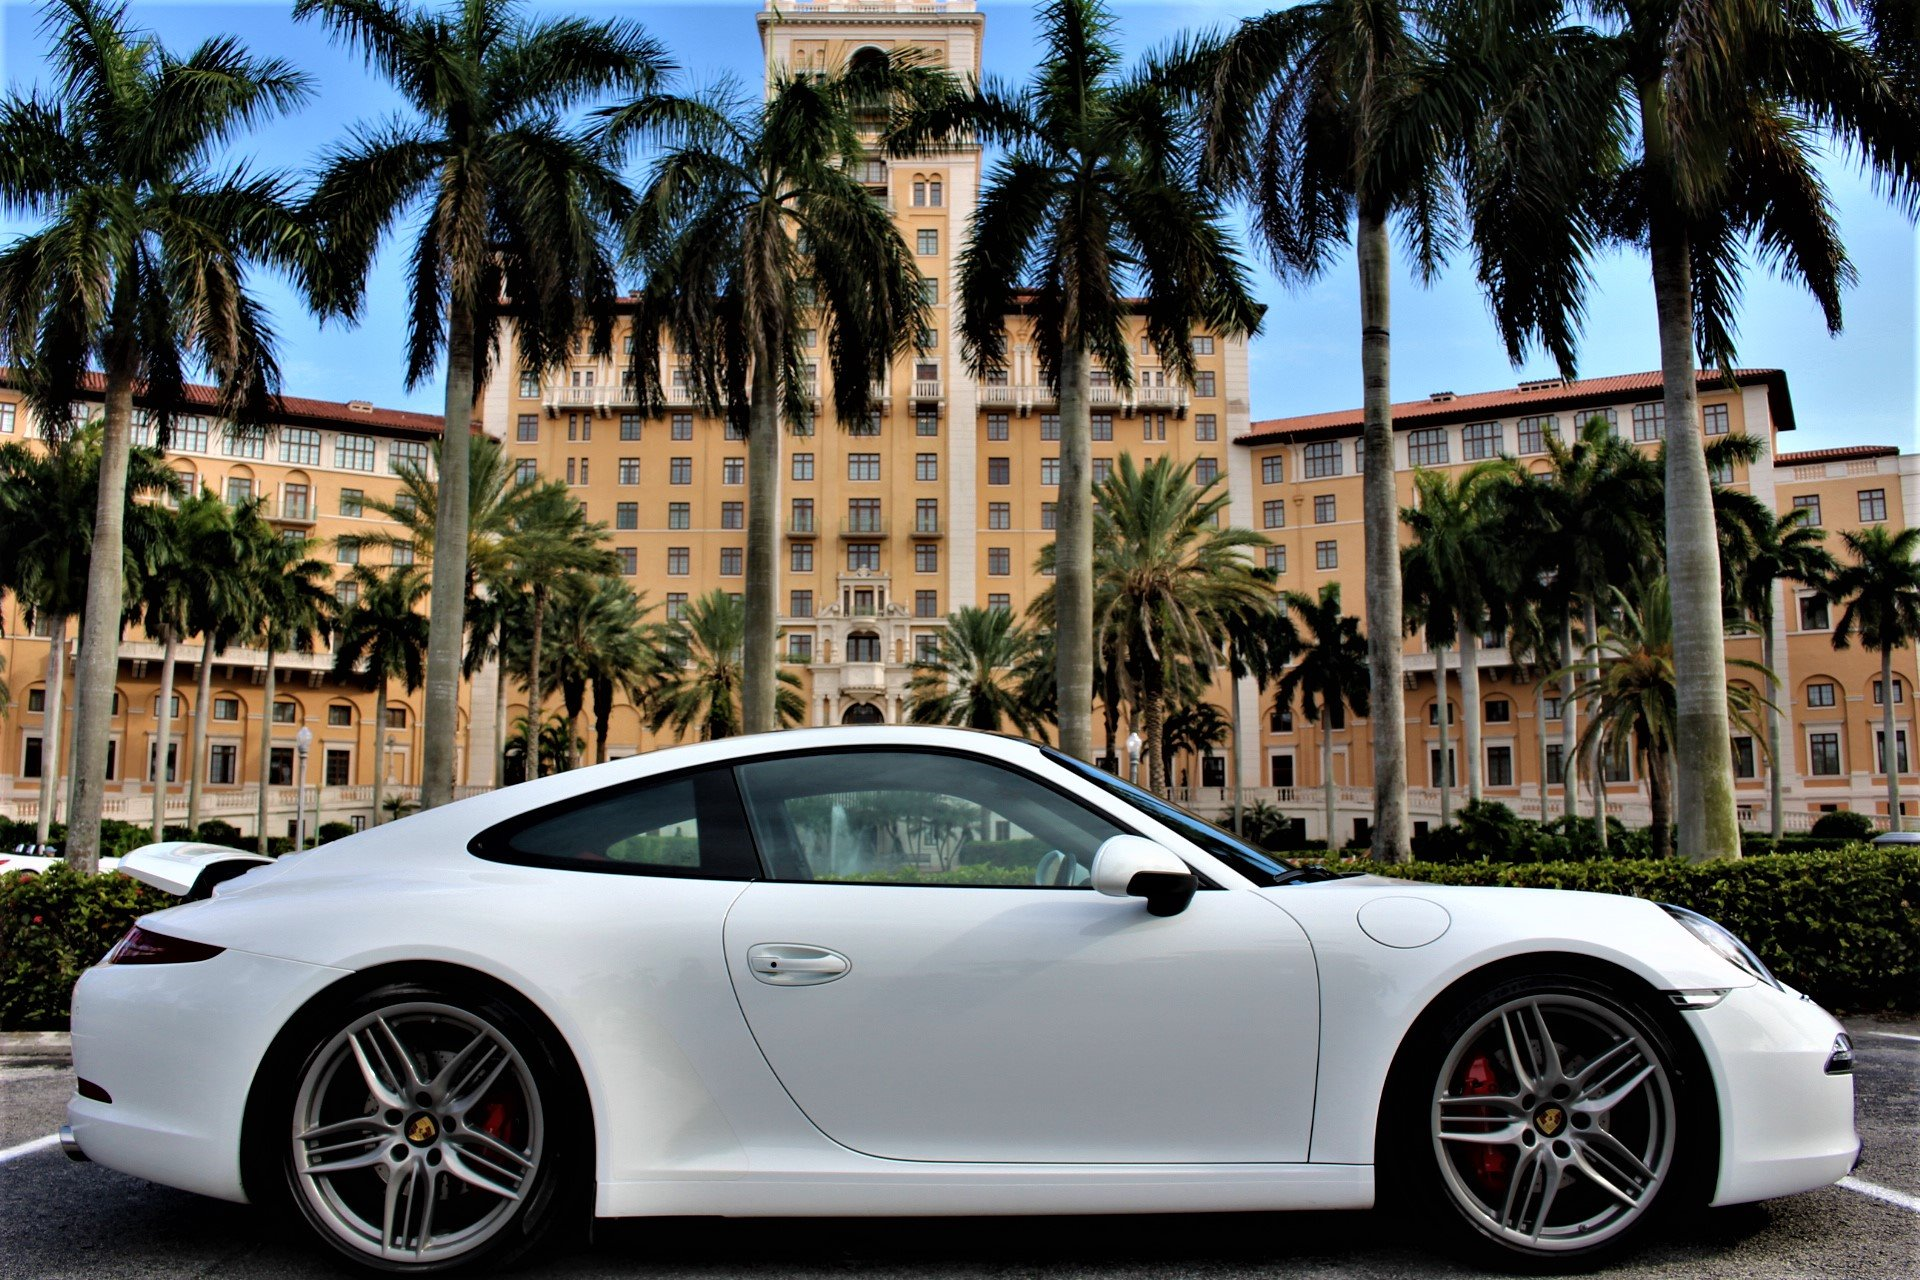 Used 2014 Porsche 911 Carrera S for sale Sold at The Gables Sports Cars in Miami FL 33146 2